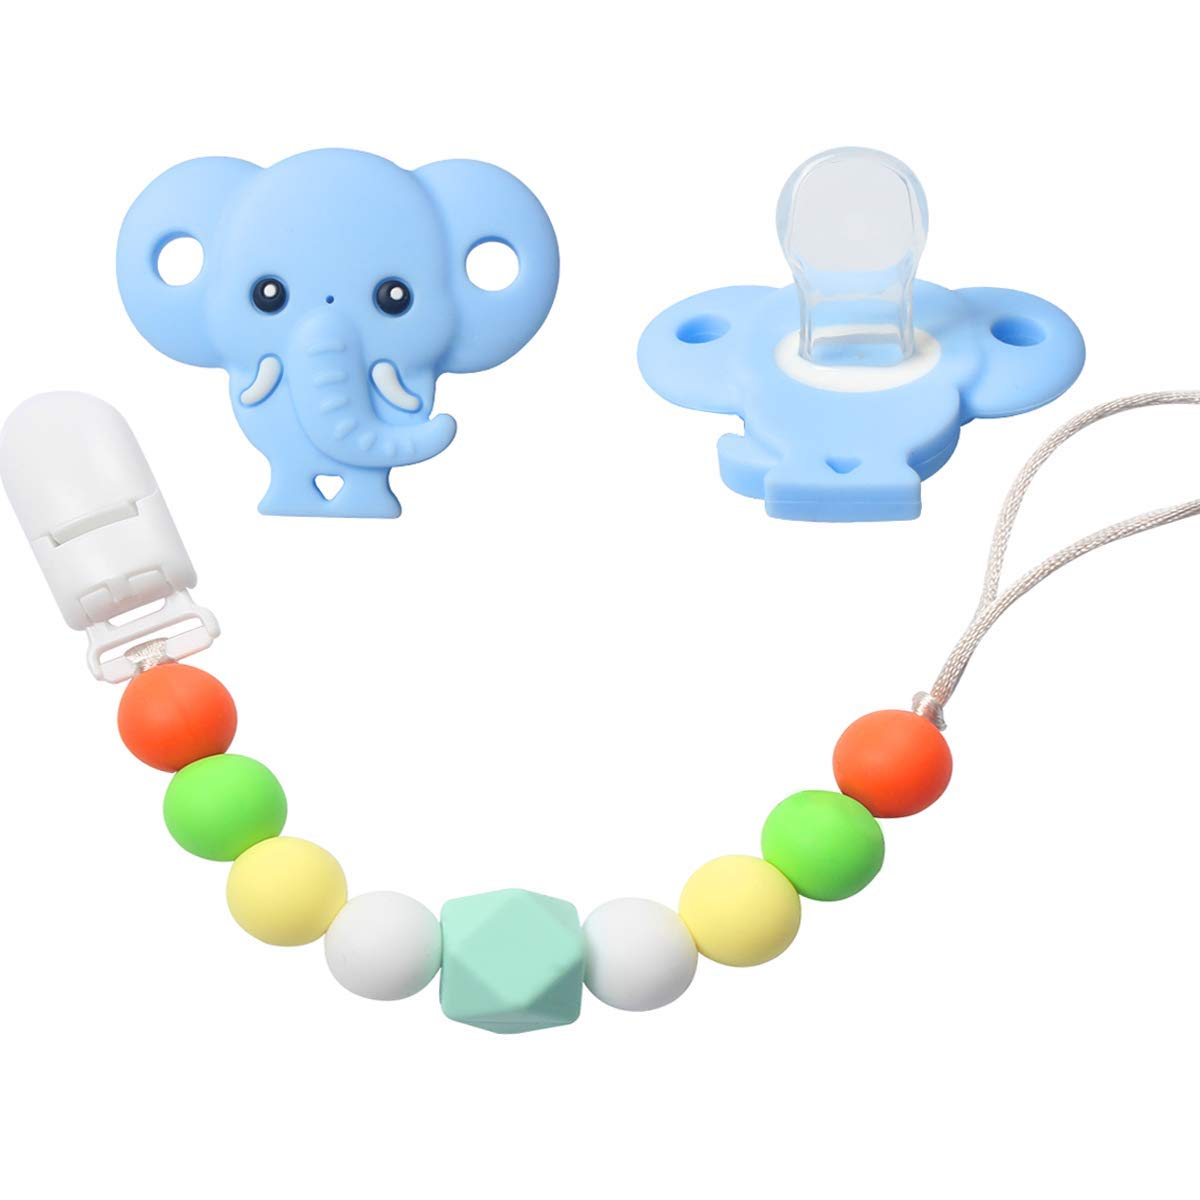 Beads & Jewelry Making Beads 1 Piece Bpa Free 100% Food Grade Silicone Dog Beads Baby Chewable Animal Teething Beads For Pacifier Clip Or Soothing Products